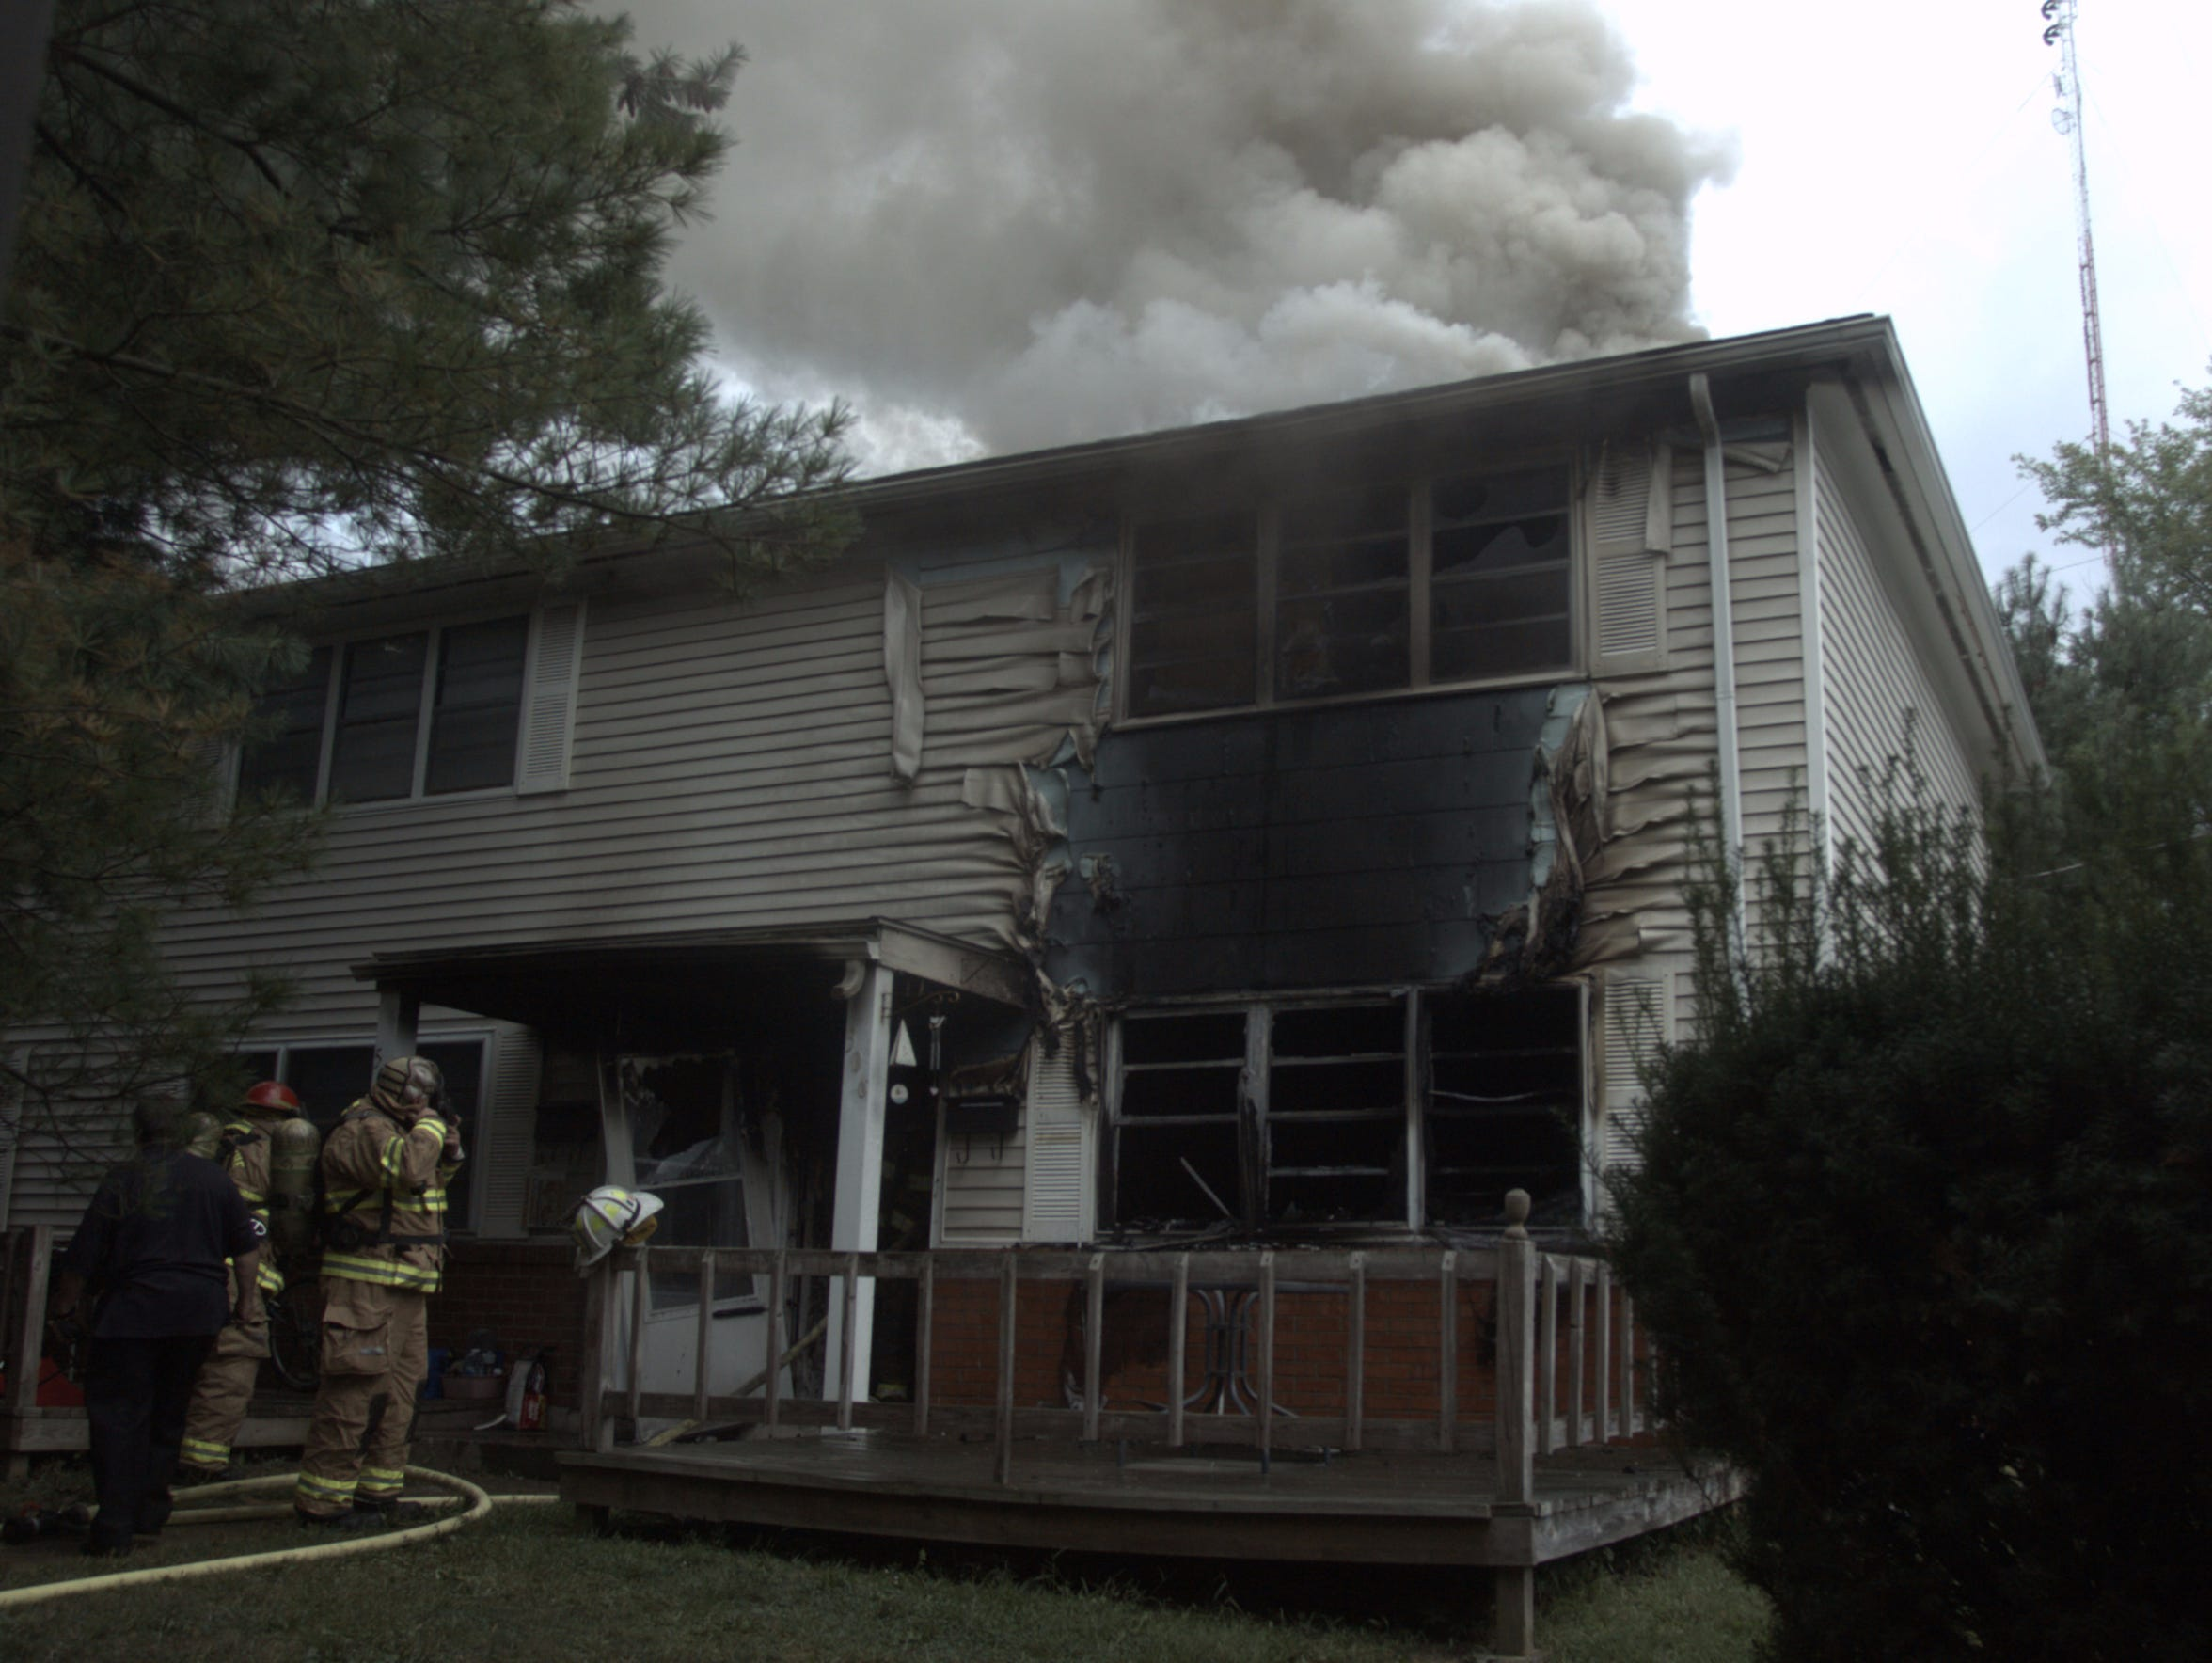 Chillicothe firefighters work to extinguish the fire